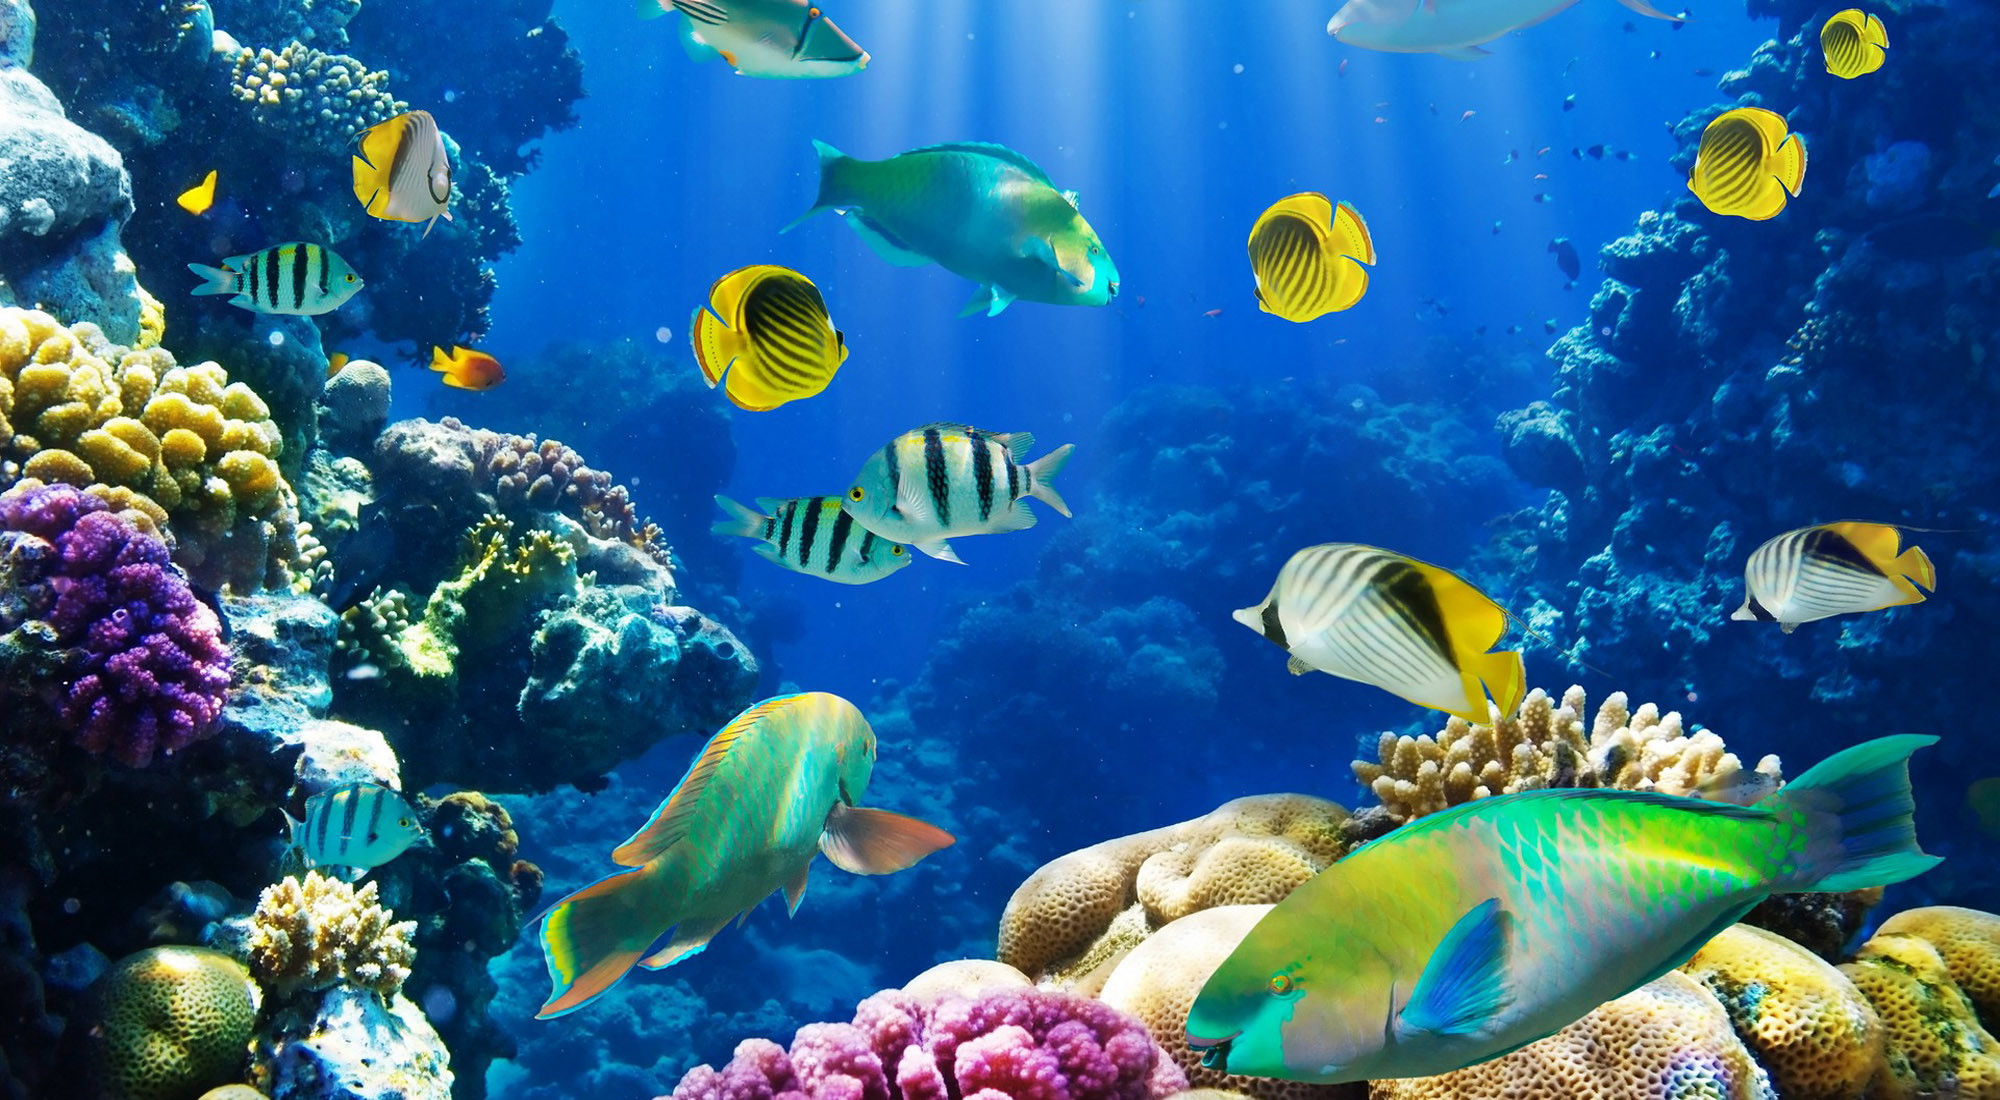 Wallpaper Of Fish 61 Images